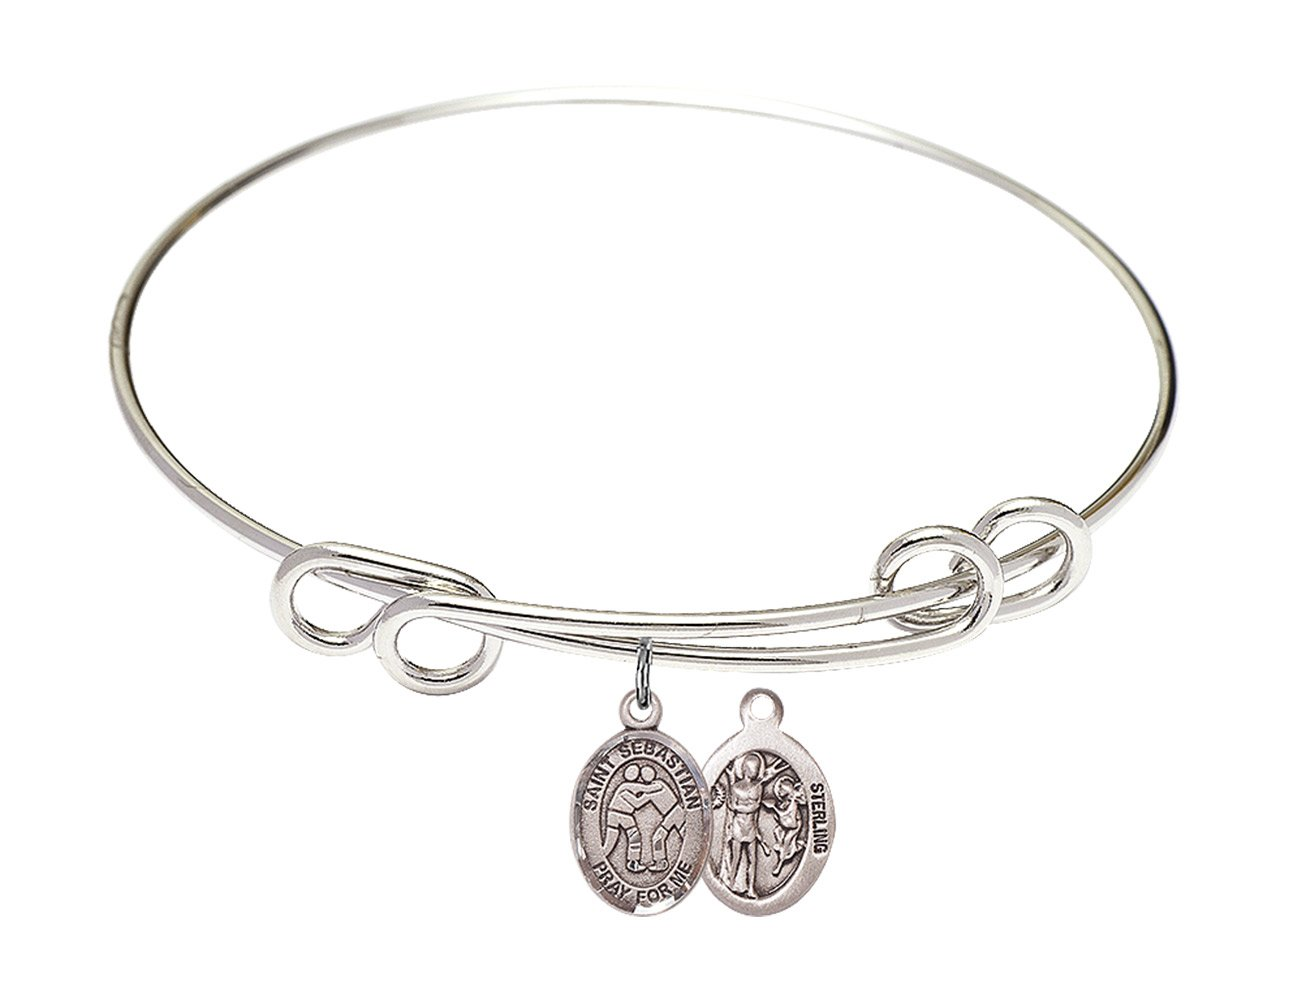 8 1/2 inch Round Double Loop Bangle Bracelet with a St. Sebastian/Wrestling charm. by F A Dumont